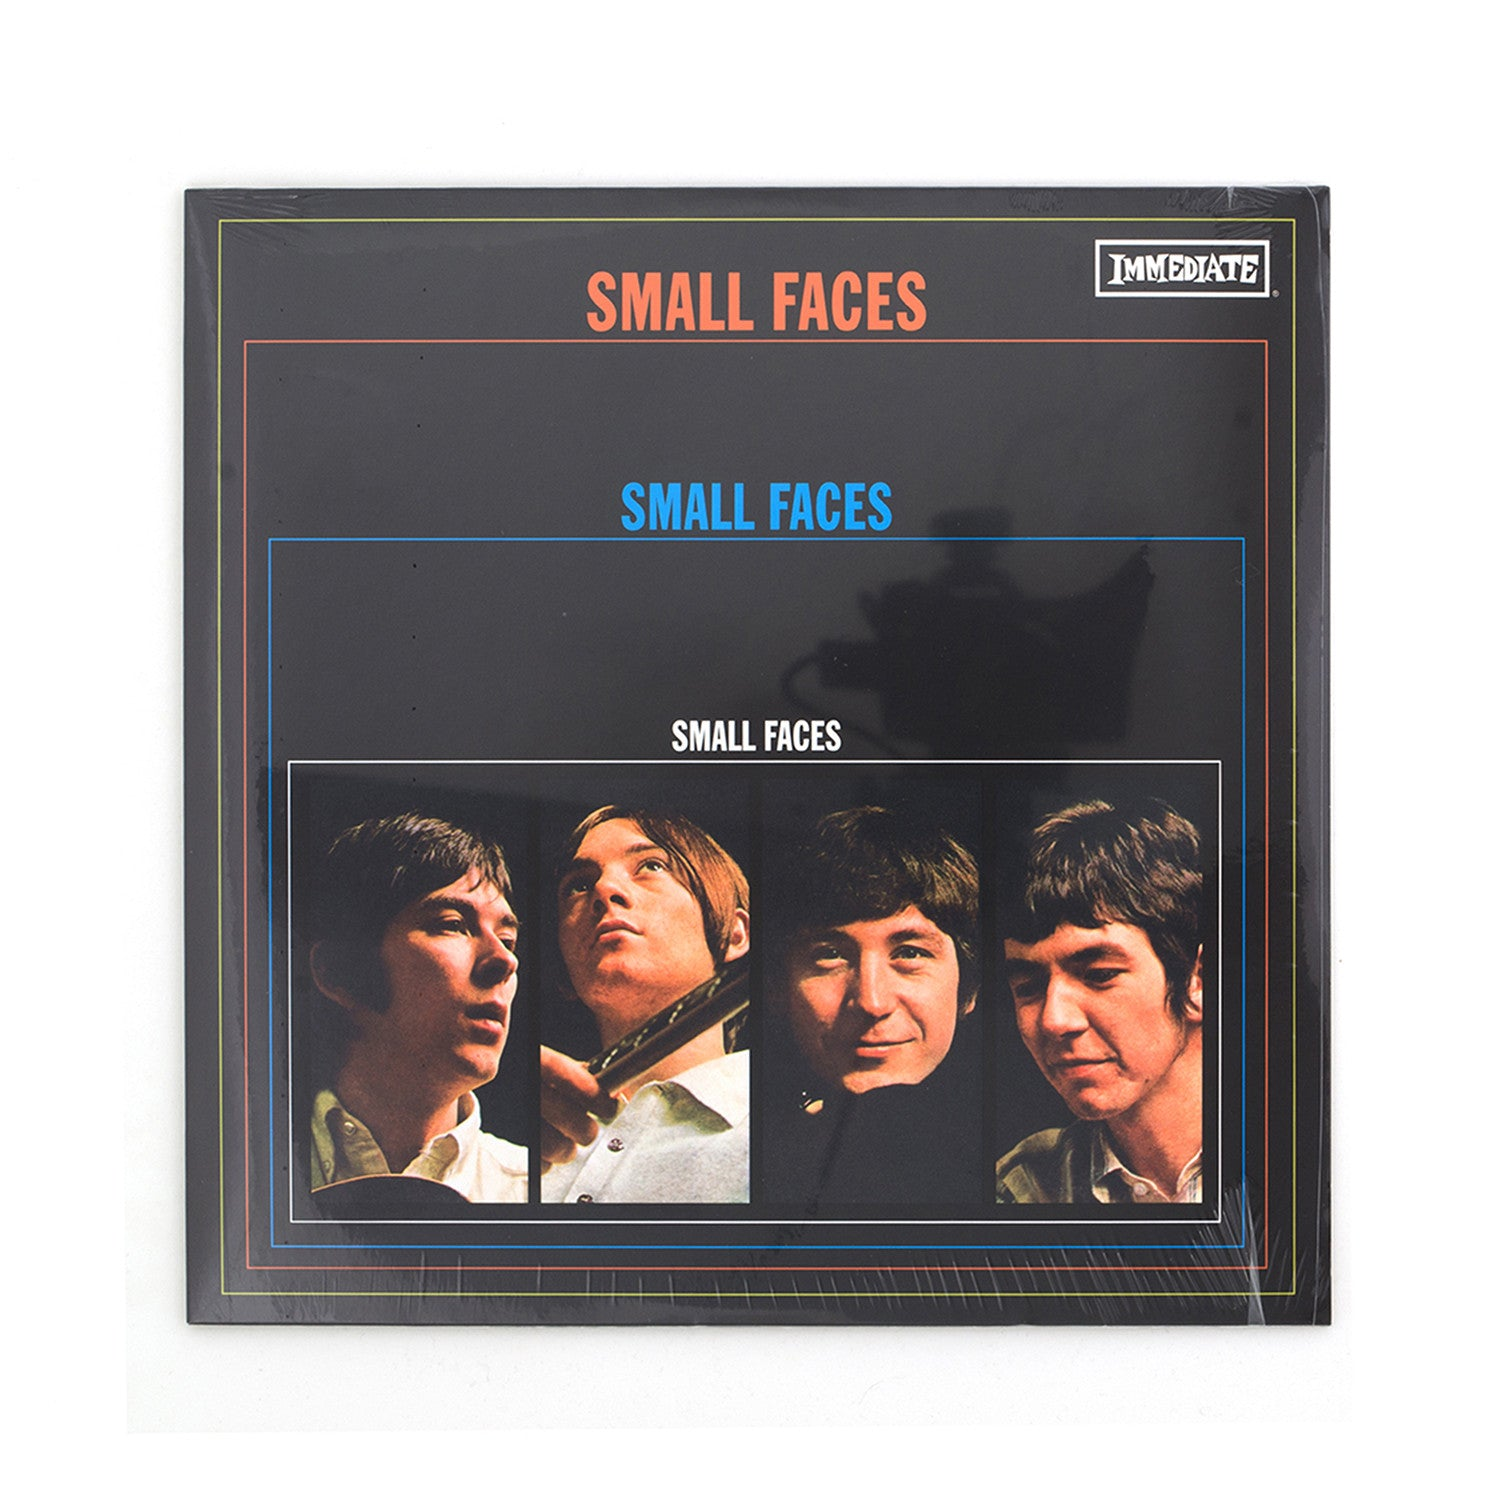 Small Faces - Small Faces -Hq- LP - Concrete